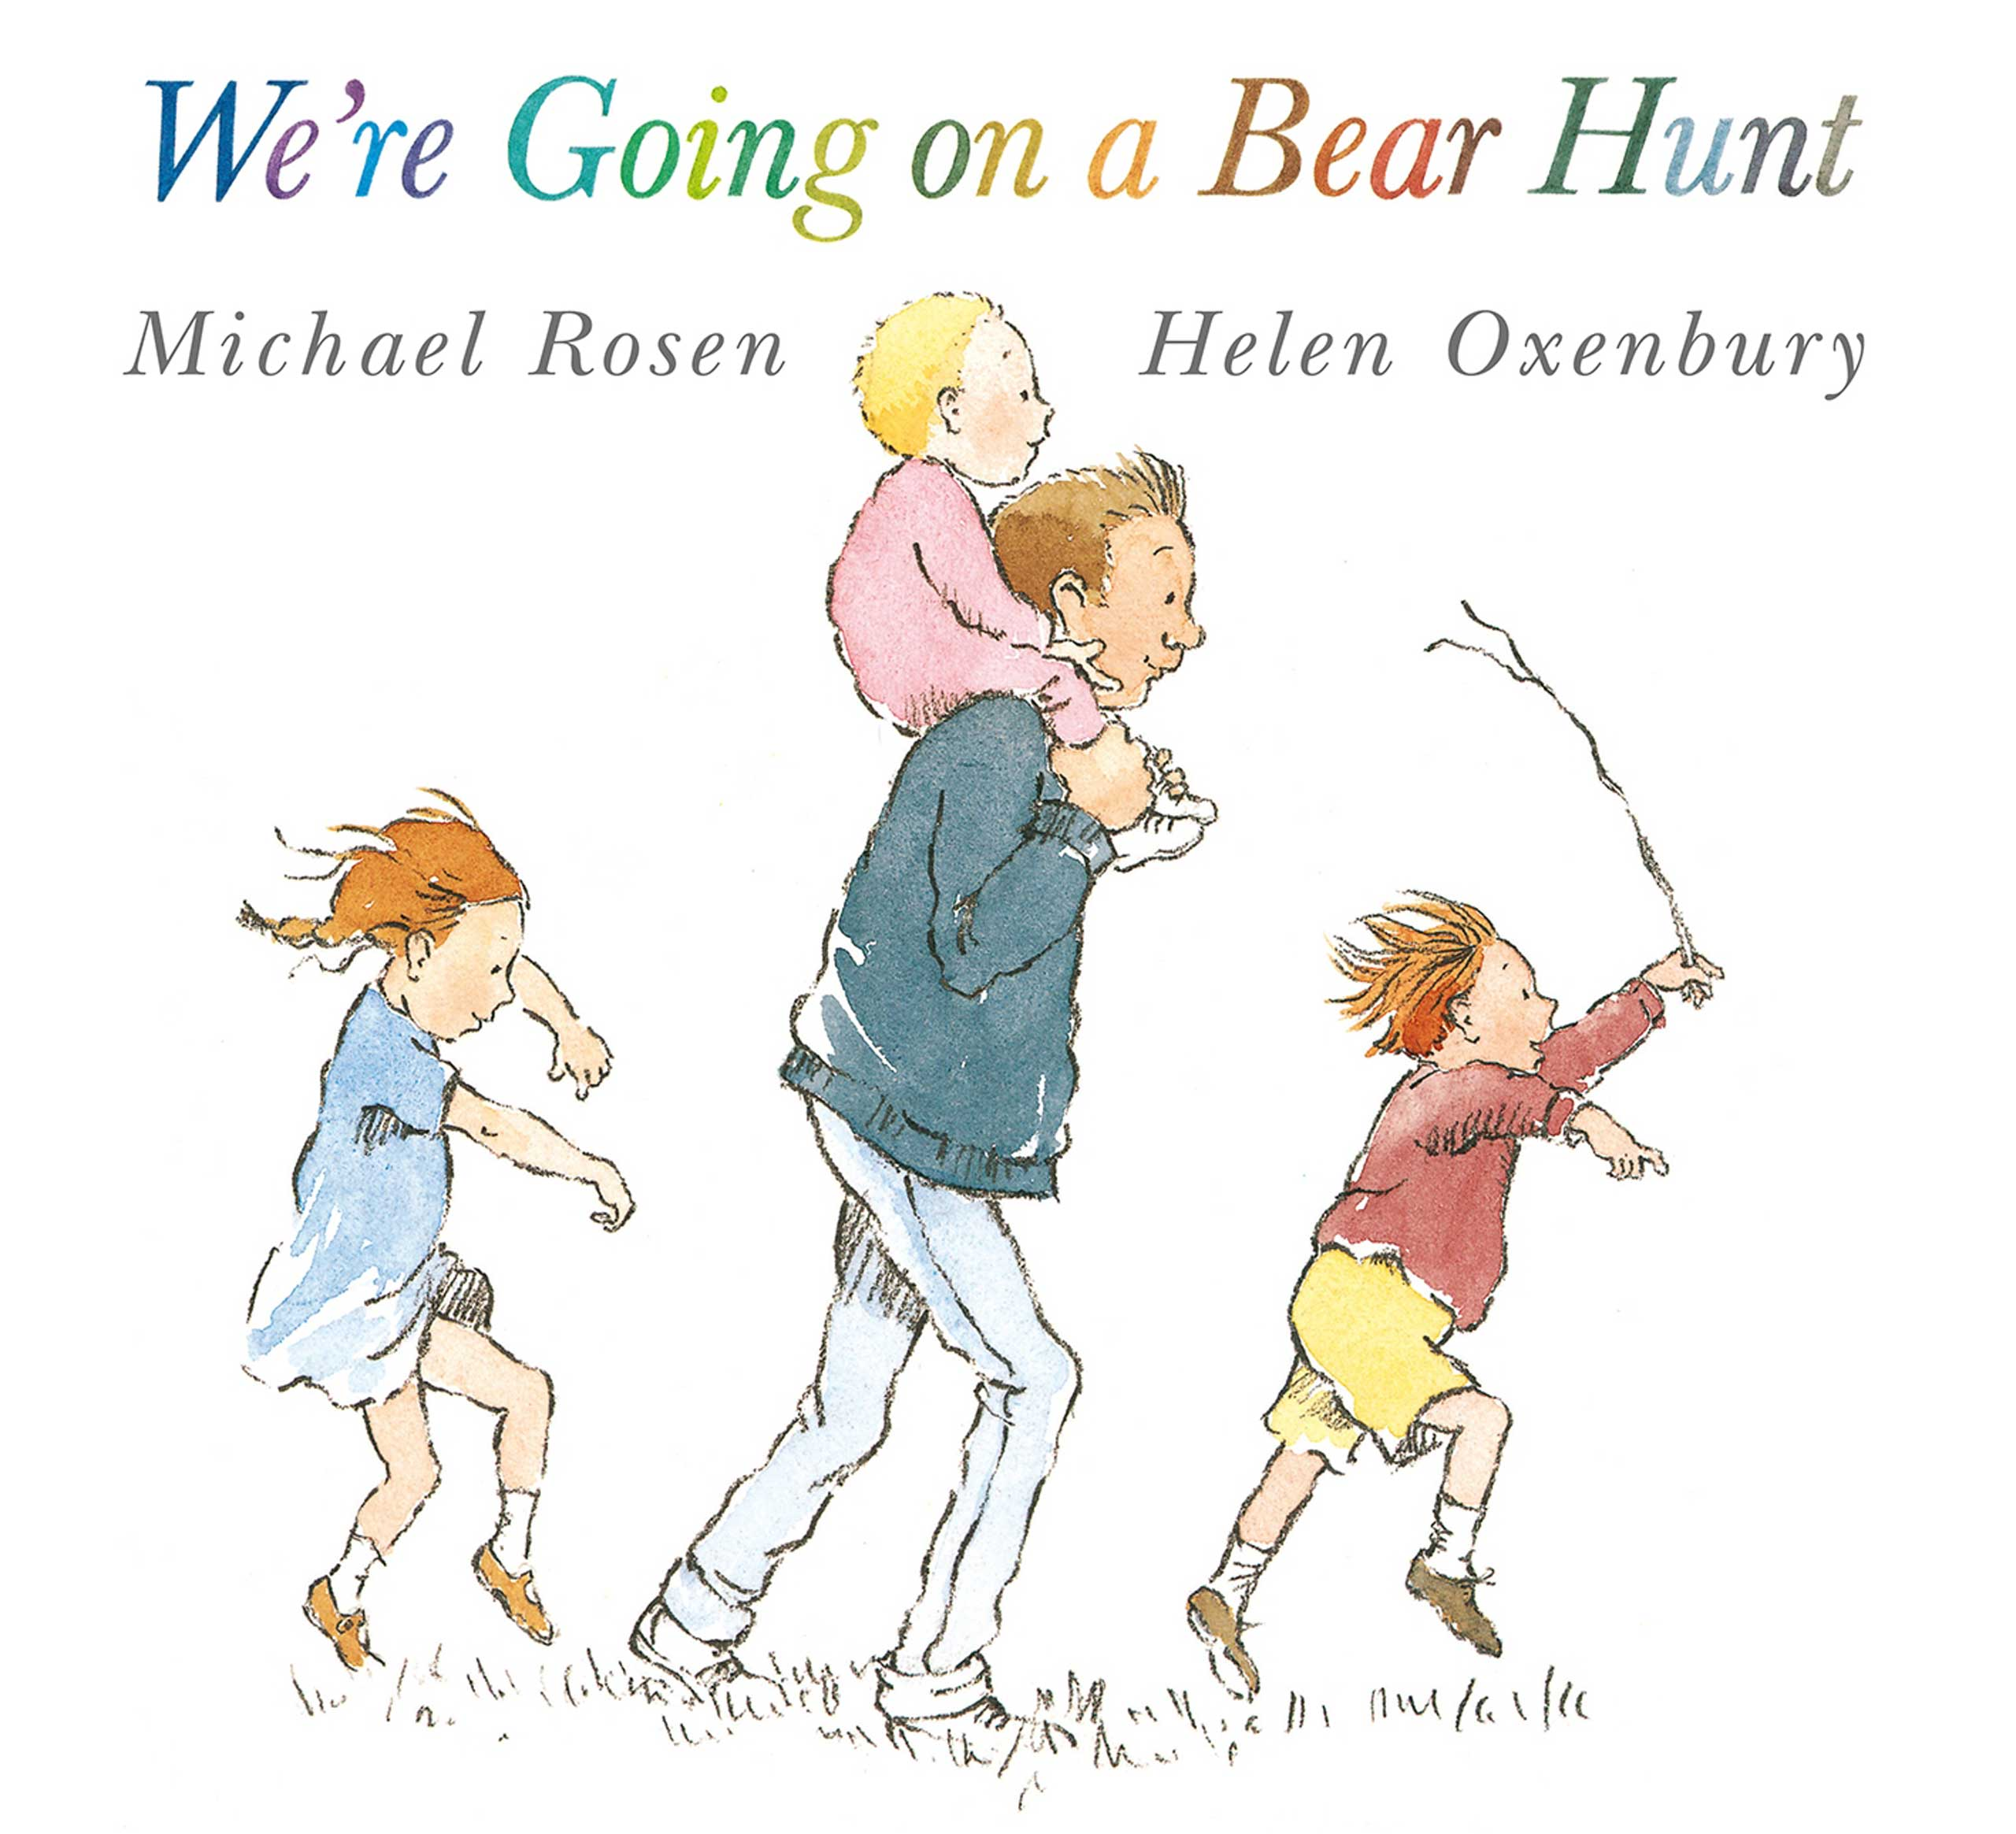 We're Going on a Bear Hunt, by Helen Oxenbury and Michael Rosen.                                                                                                                            A family goes off to hunt a bear and the bear does not take kindly to this.                                                                                                                            Buy now: We're Going on a Bear Hunt